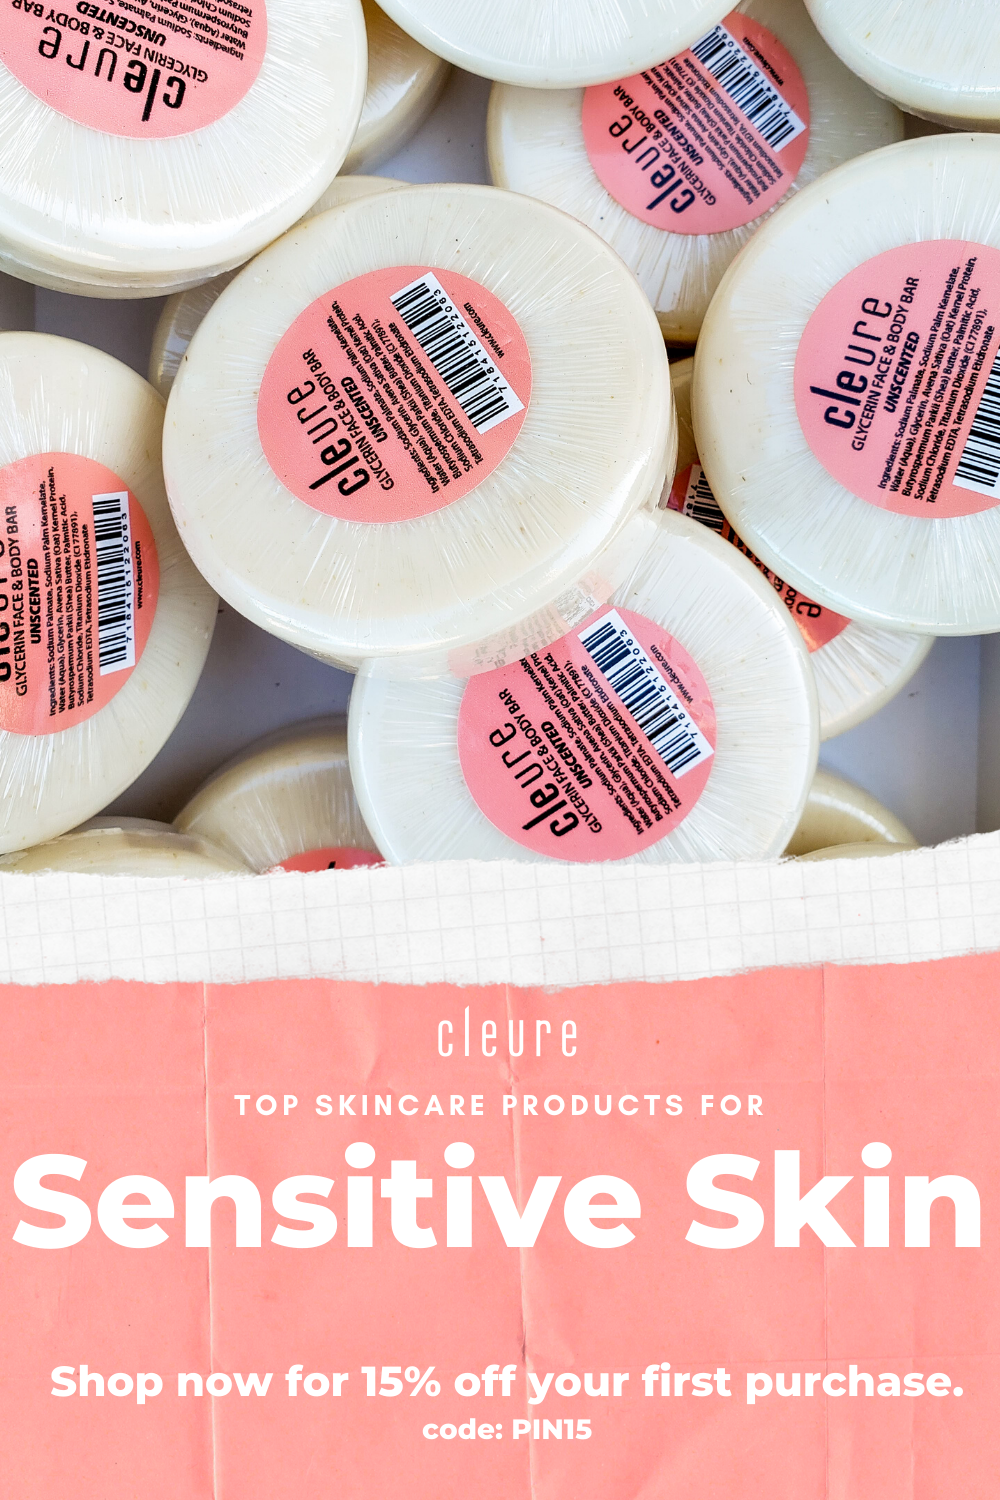 Top Skincare Products For Sensitive Skin Top Skin Care Products Lotion For Dry Skin Dry Skin Cleansers